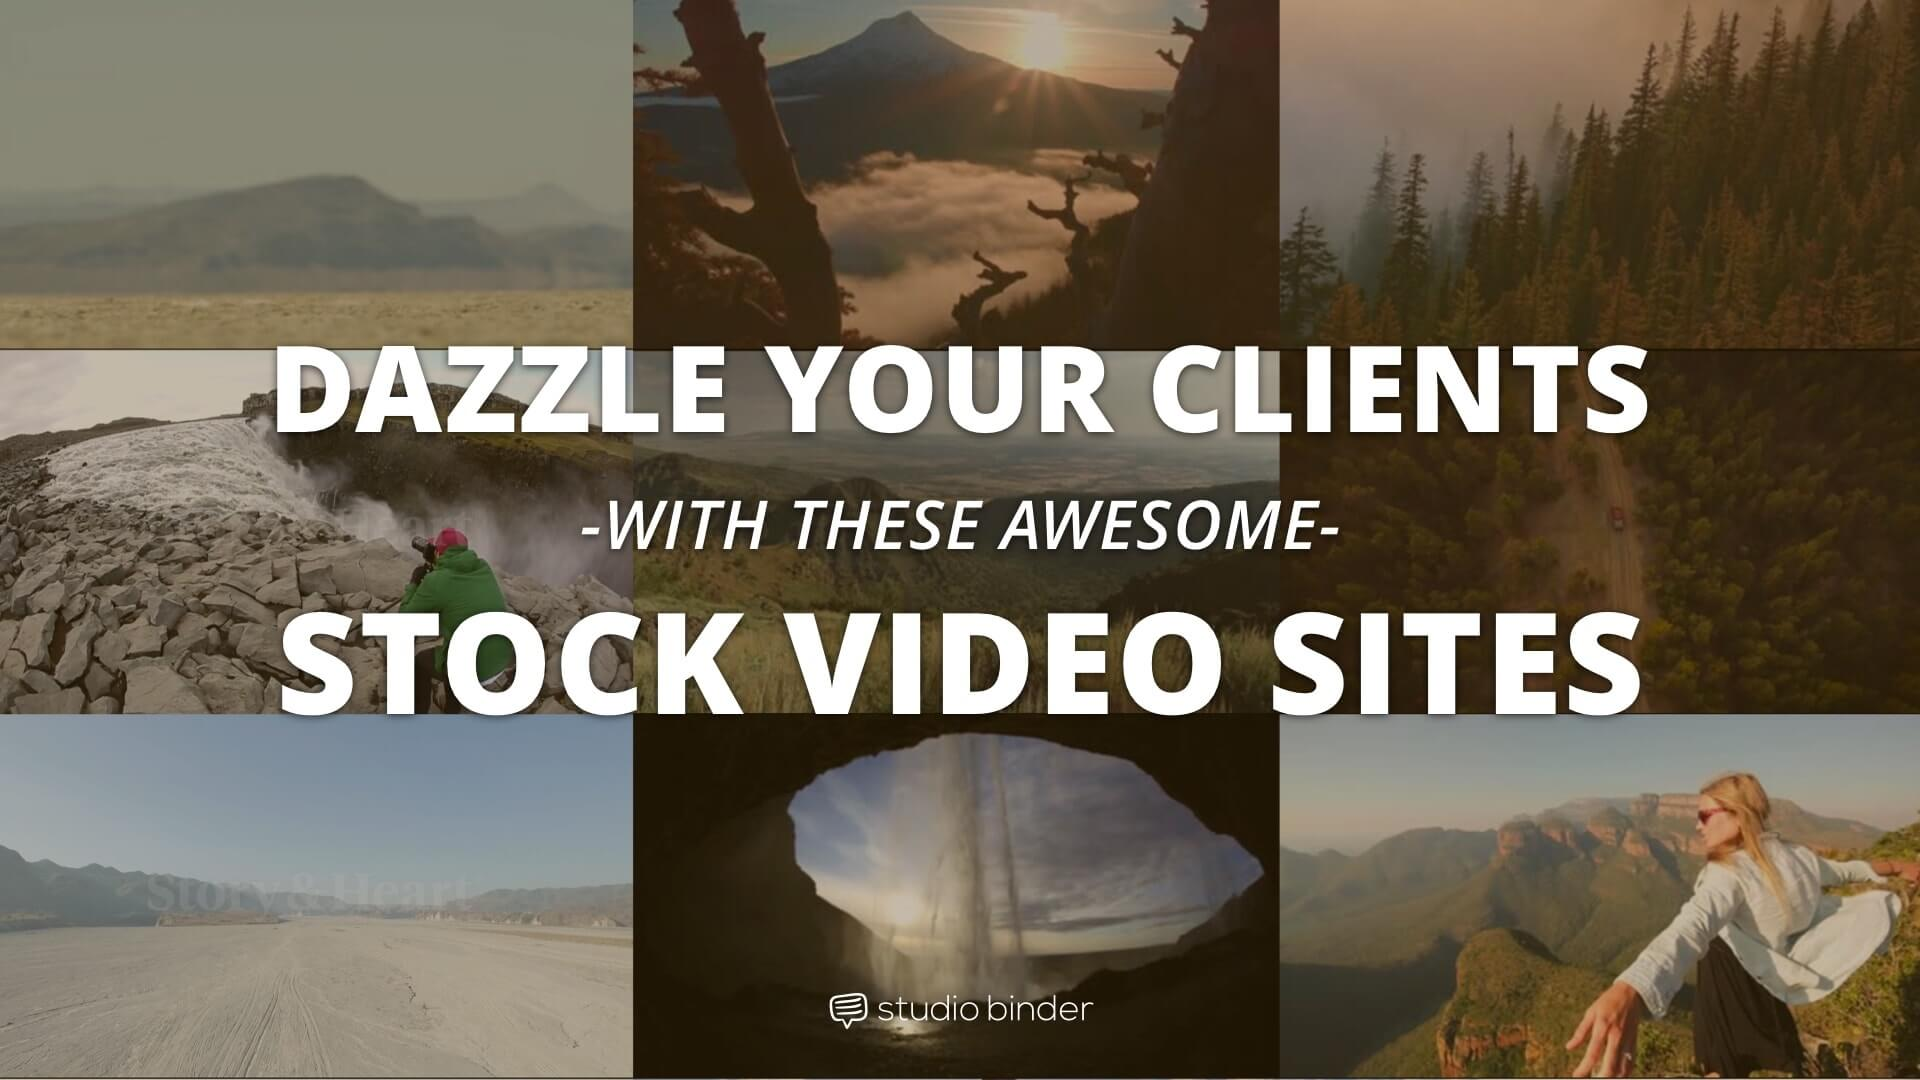 Dazzle Your Clients With These Awesome Stock Video Sites - Featured - StudioBinder